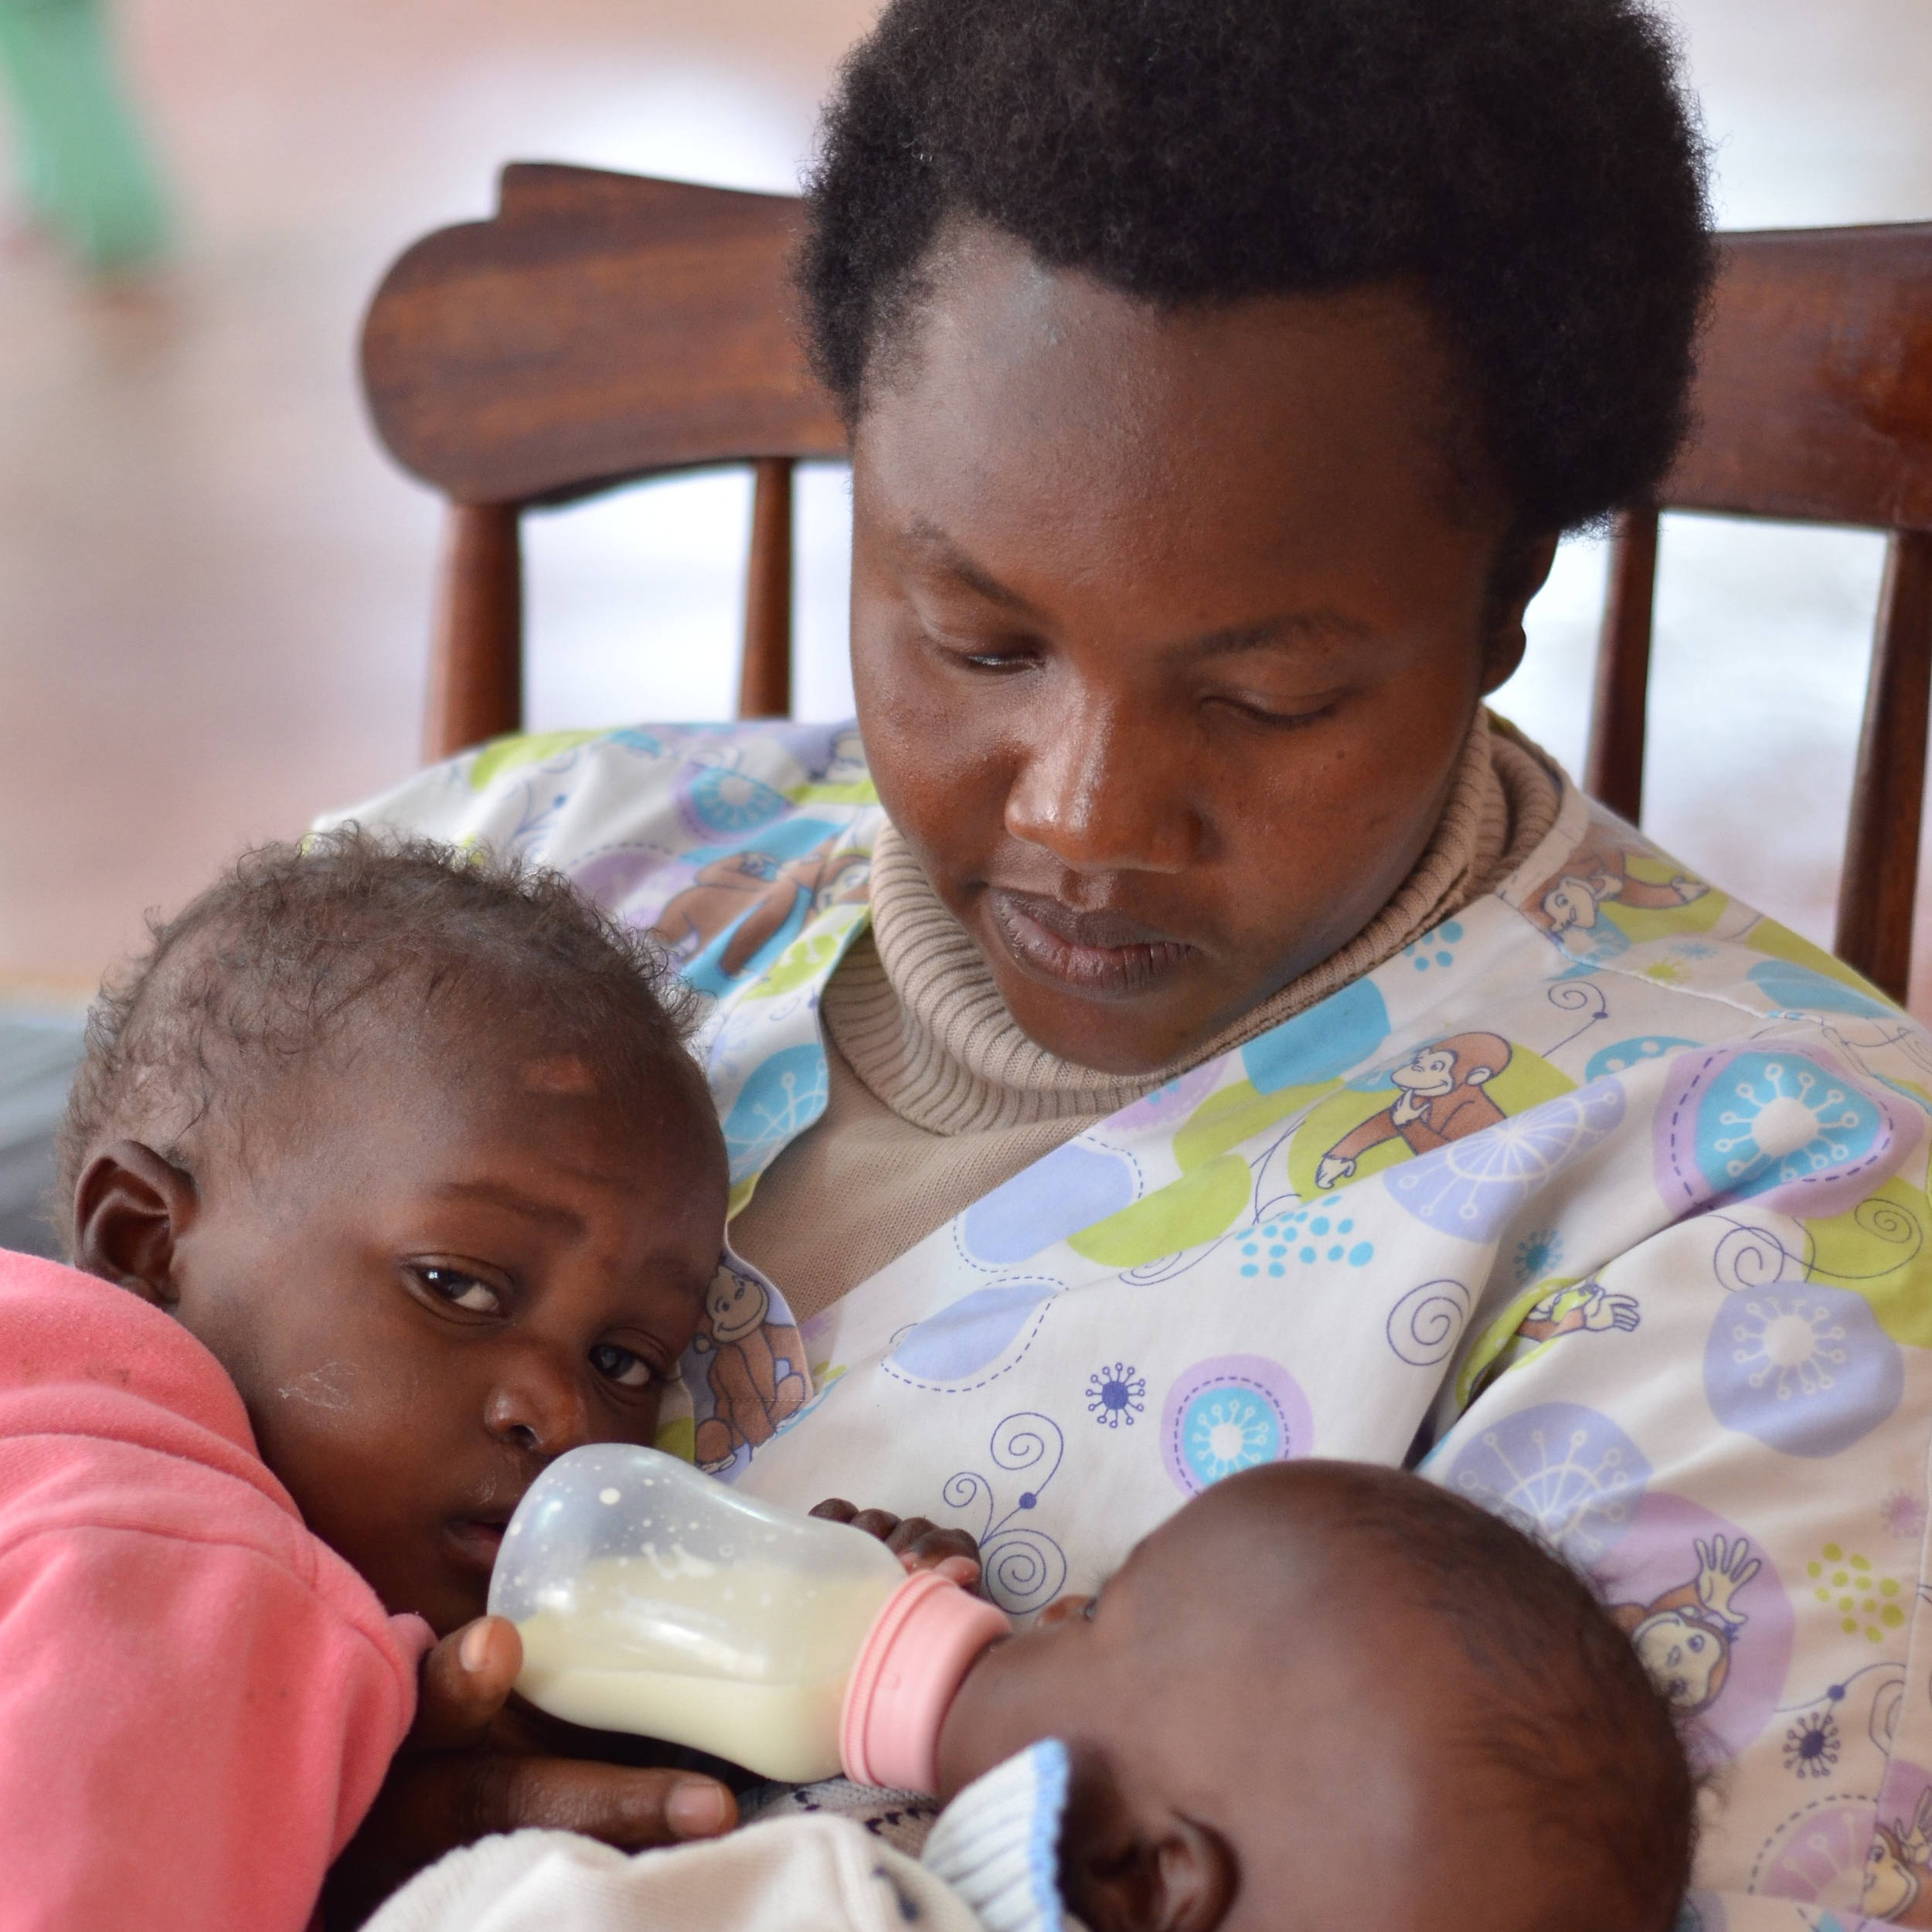 Women's Health - Improving reproductive health, plus maternal care and support.